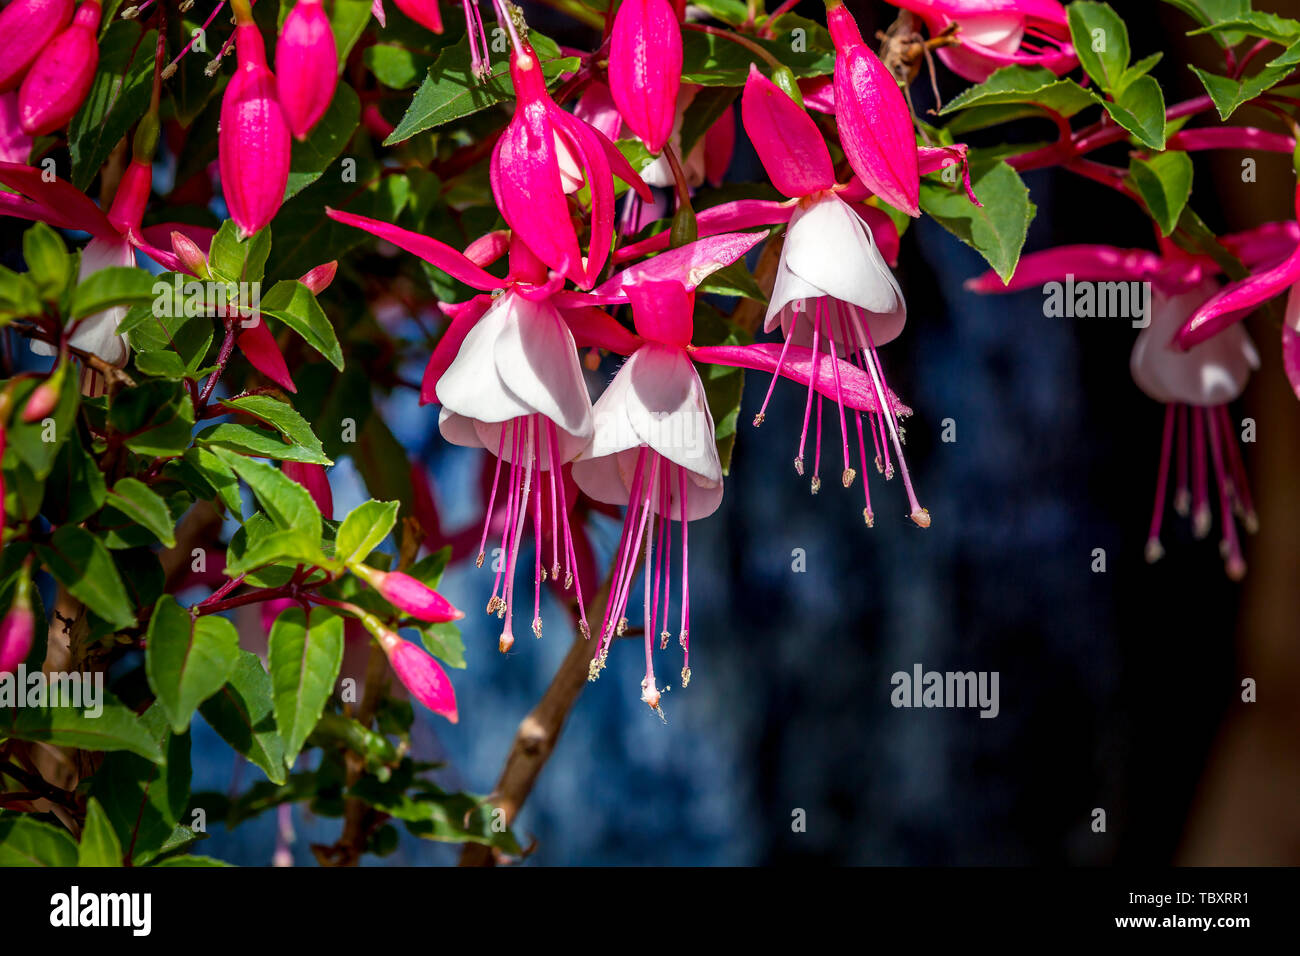 FUCHSIA MICROPHYLLA PINK  CONTAINER GARDEN HARDY PERENNIAL HEDGING PLANT